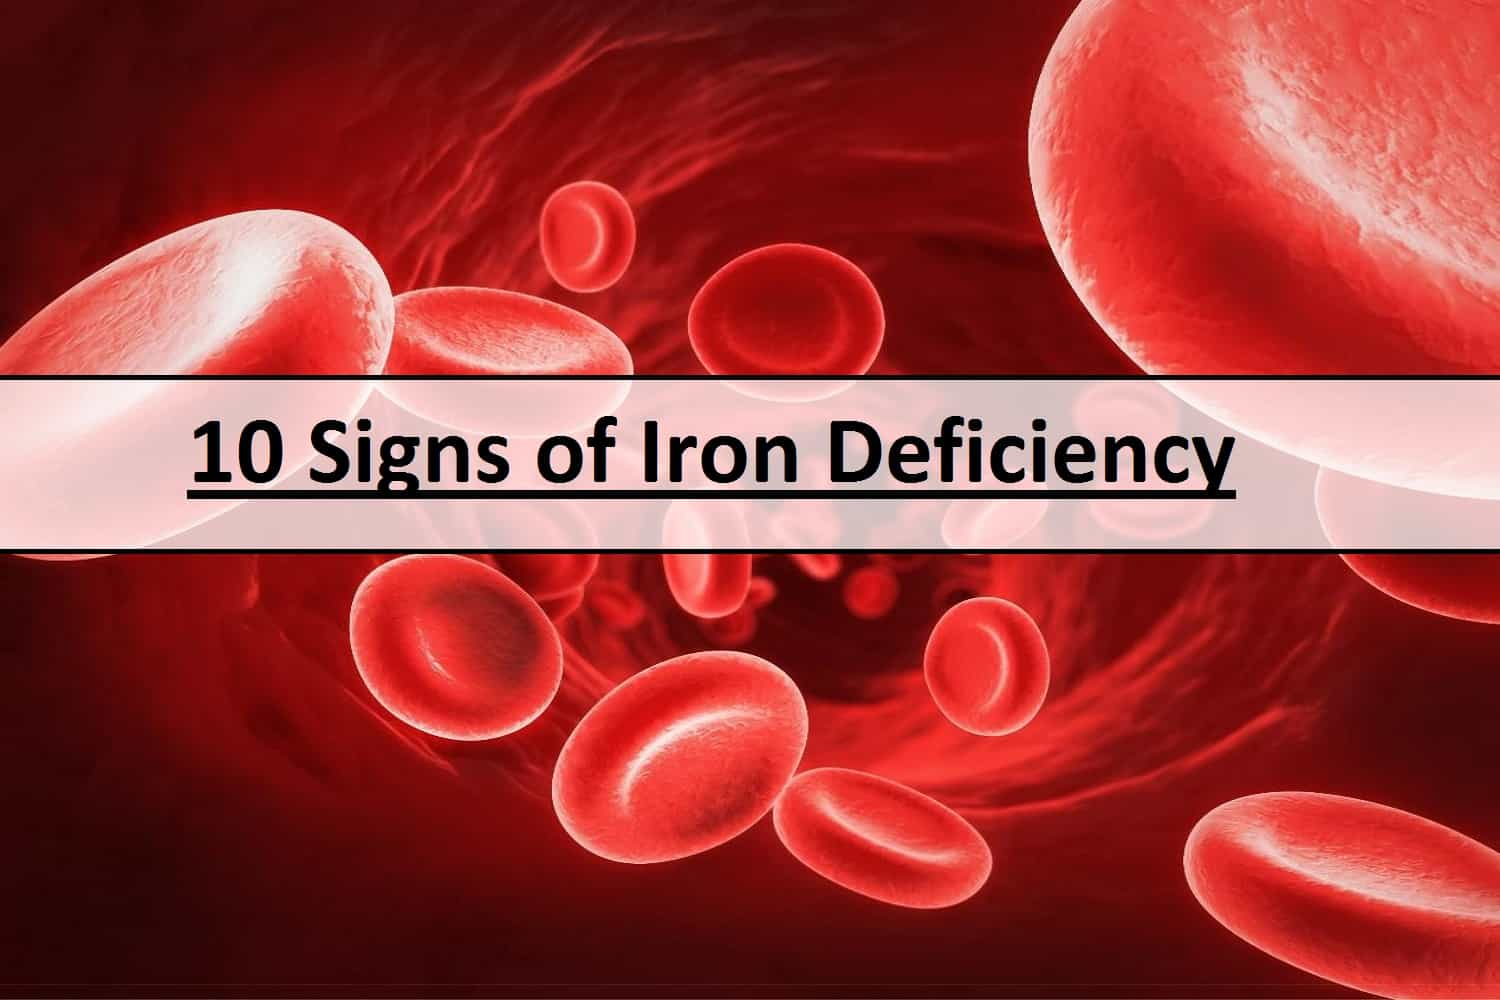 10 Signs of Iron Deficiency